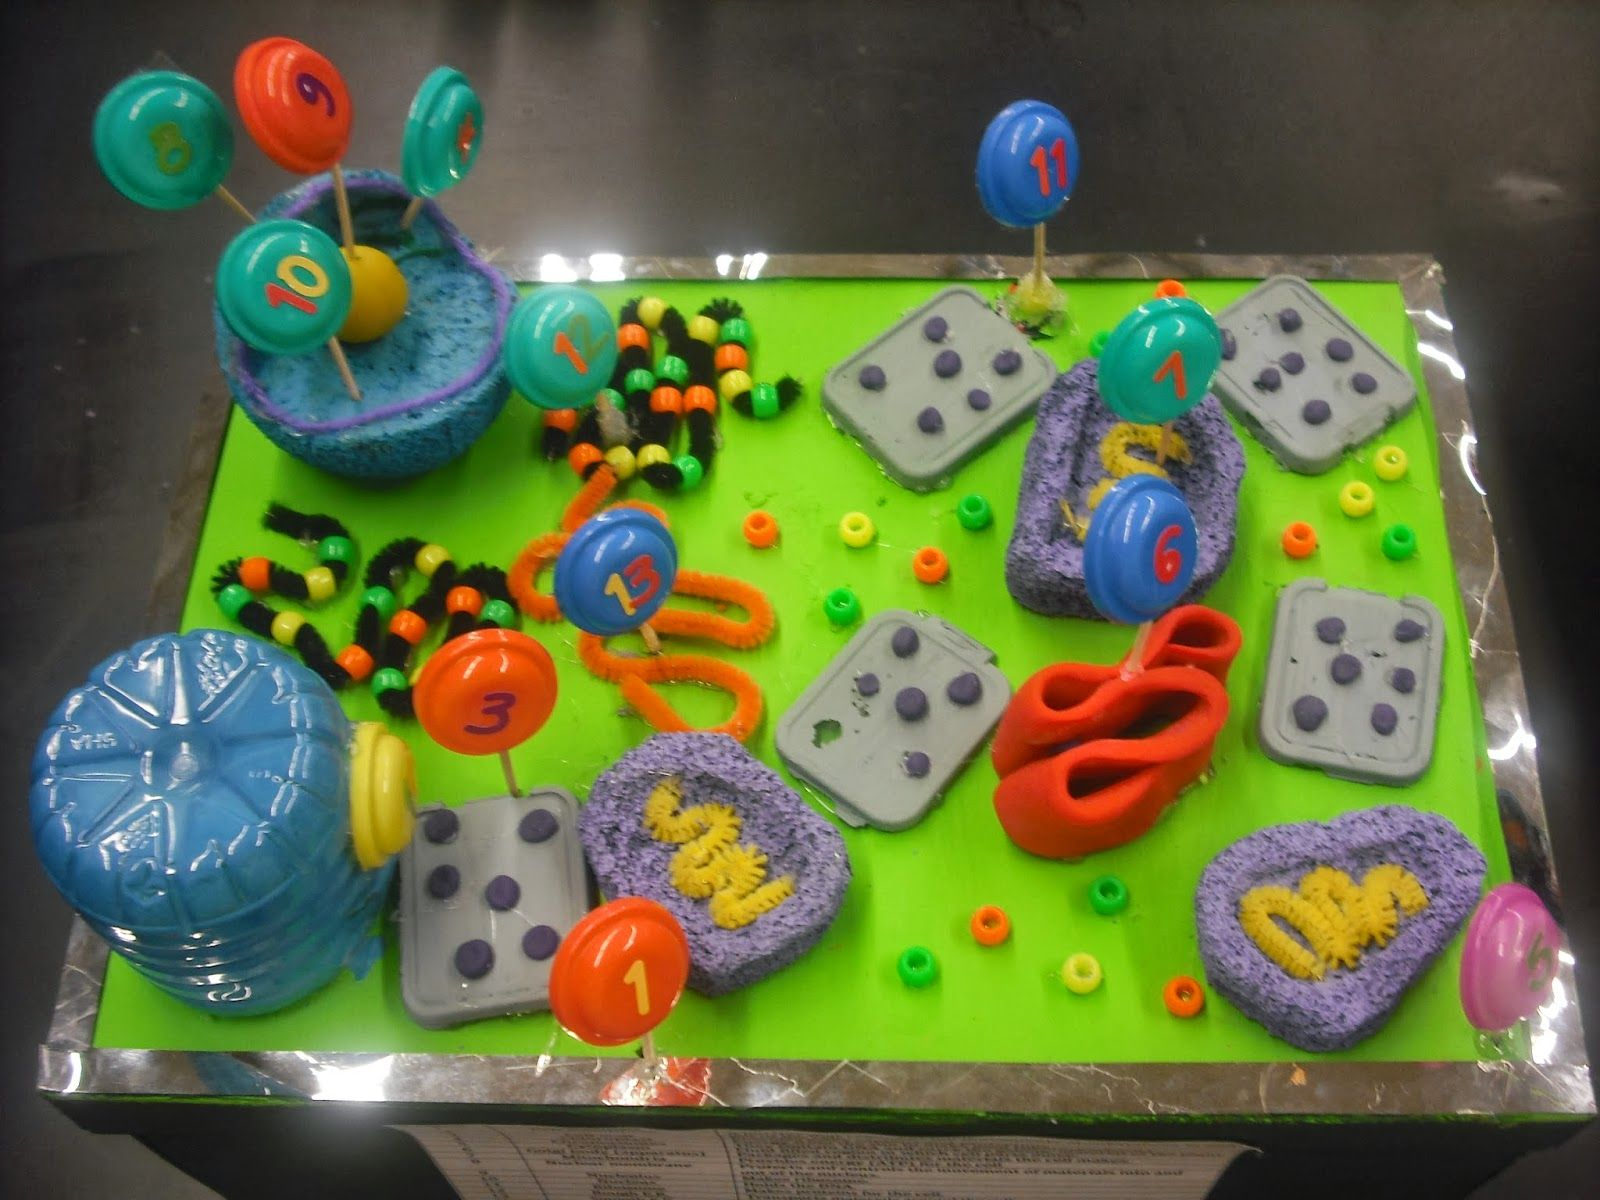 Animal and Plant cell models by Mr. Lalata's 7th/8th grade